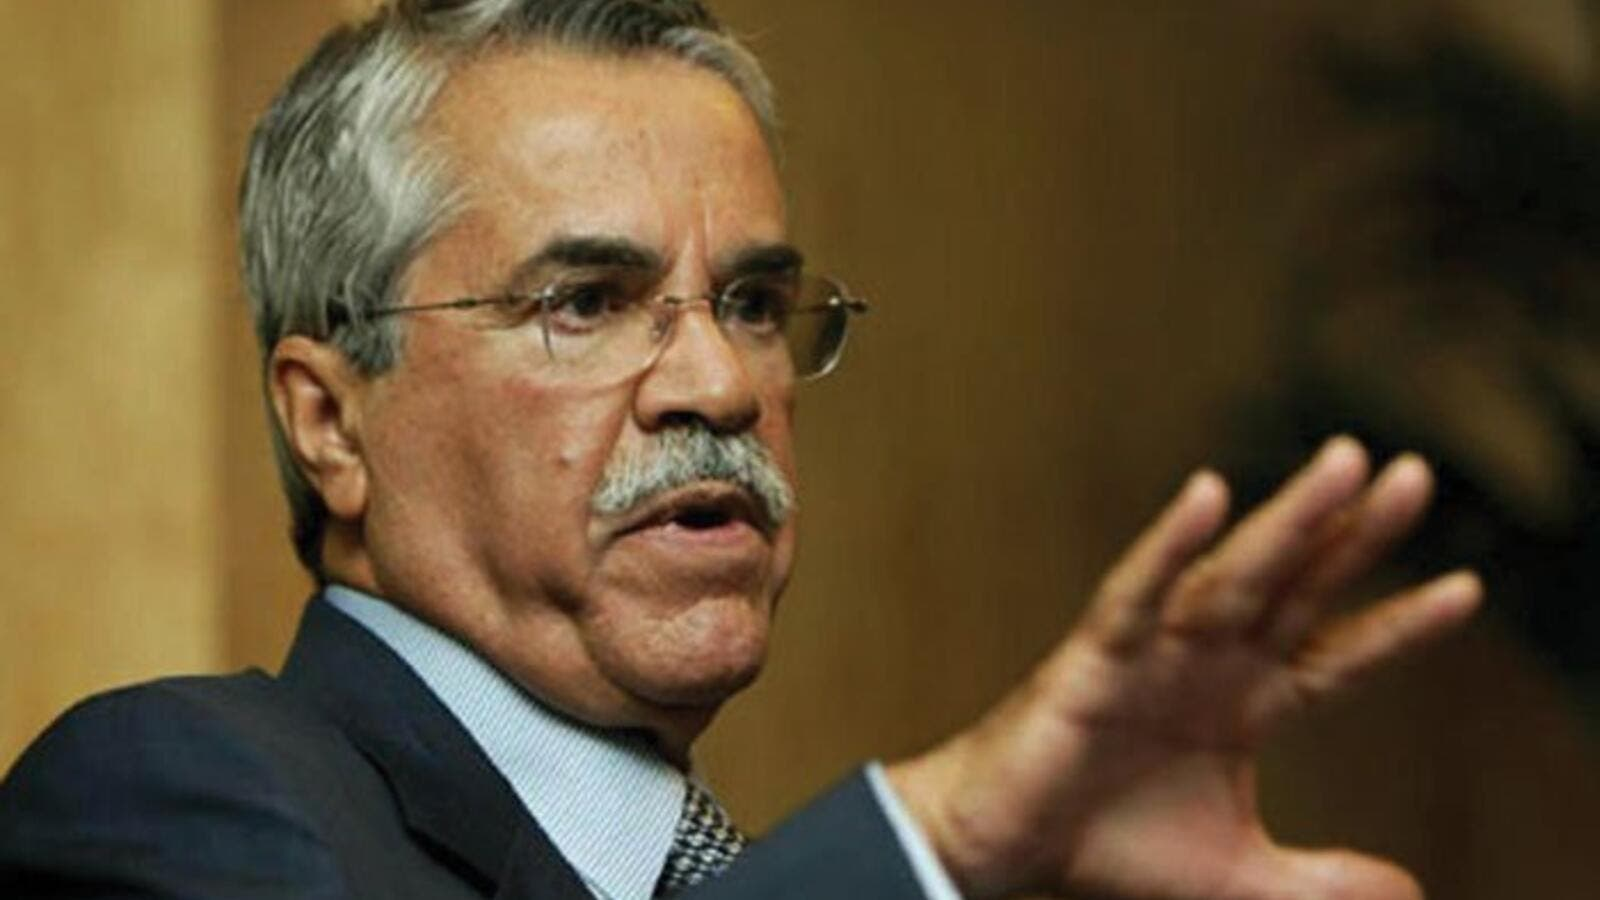 Ali al-Naimi, who has been in charge of the kingdom's oil policy since 1995. (File photo)